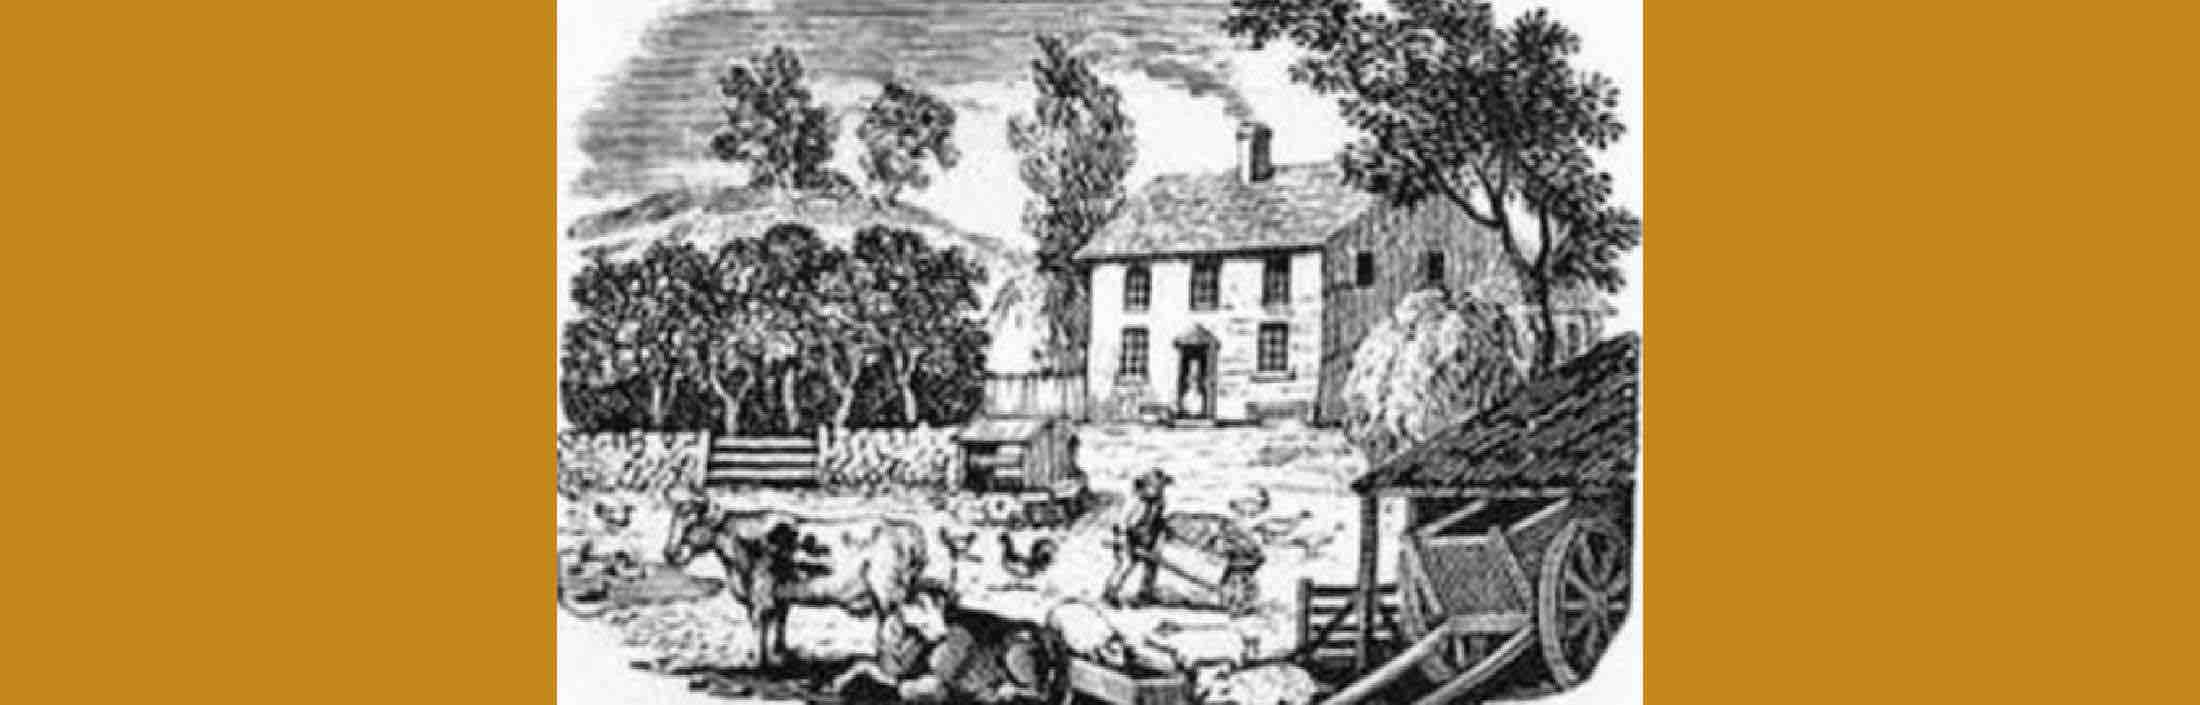 Conversation in the Fields: How Warner Mifflin Became an Early Champion of Freedom in Slavery Times